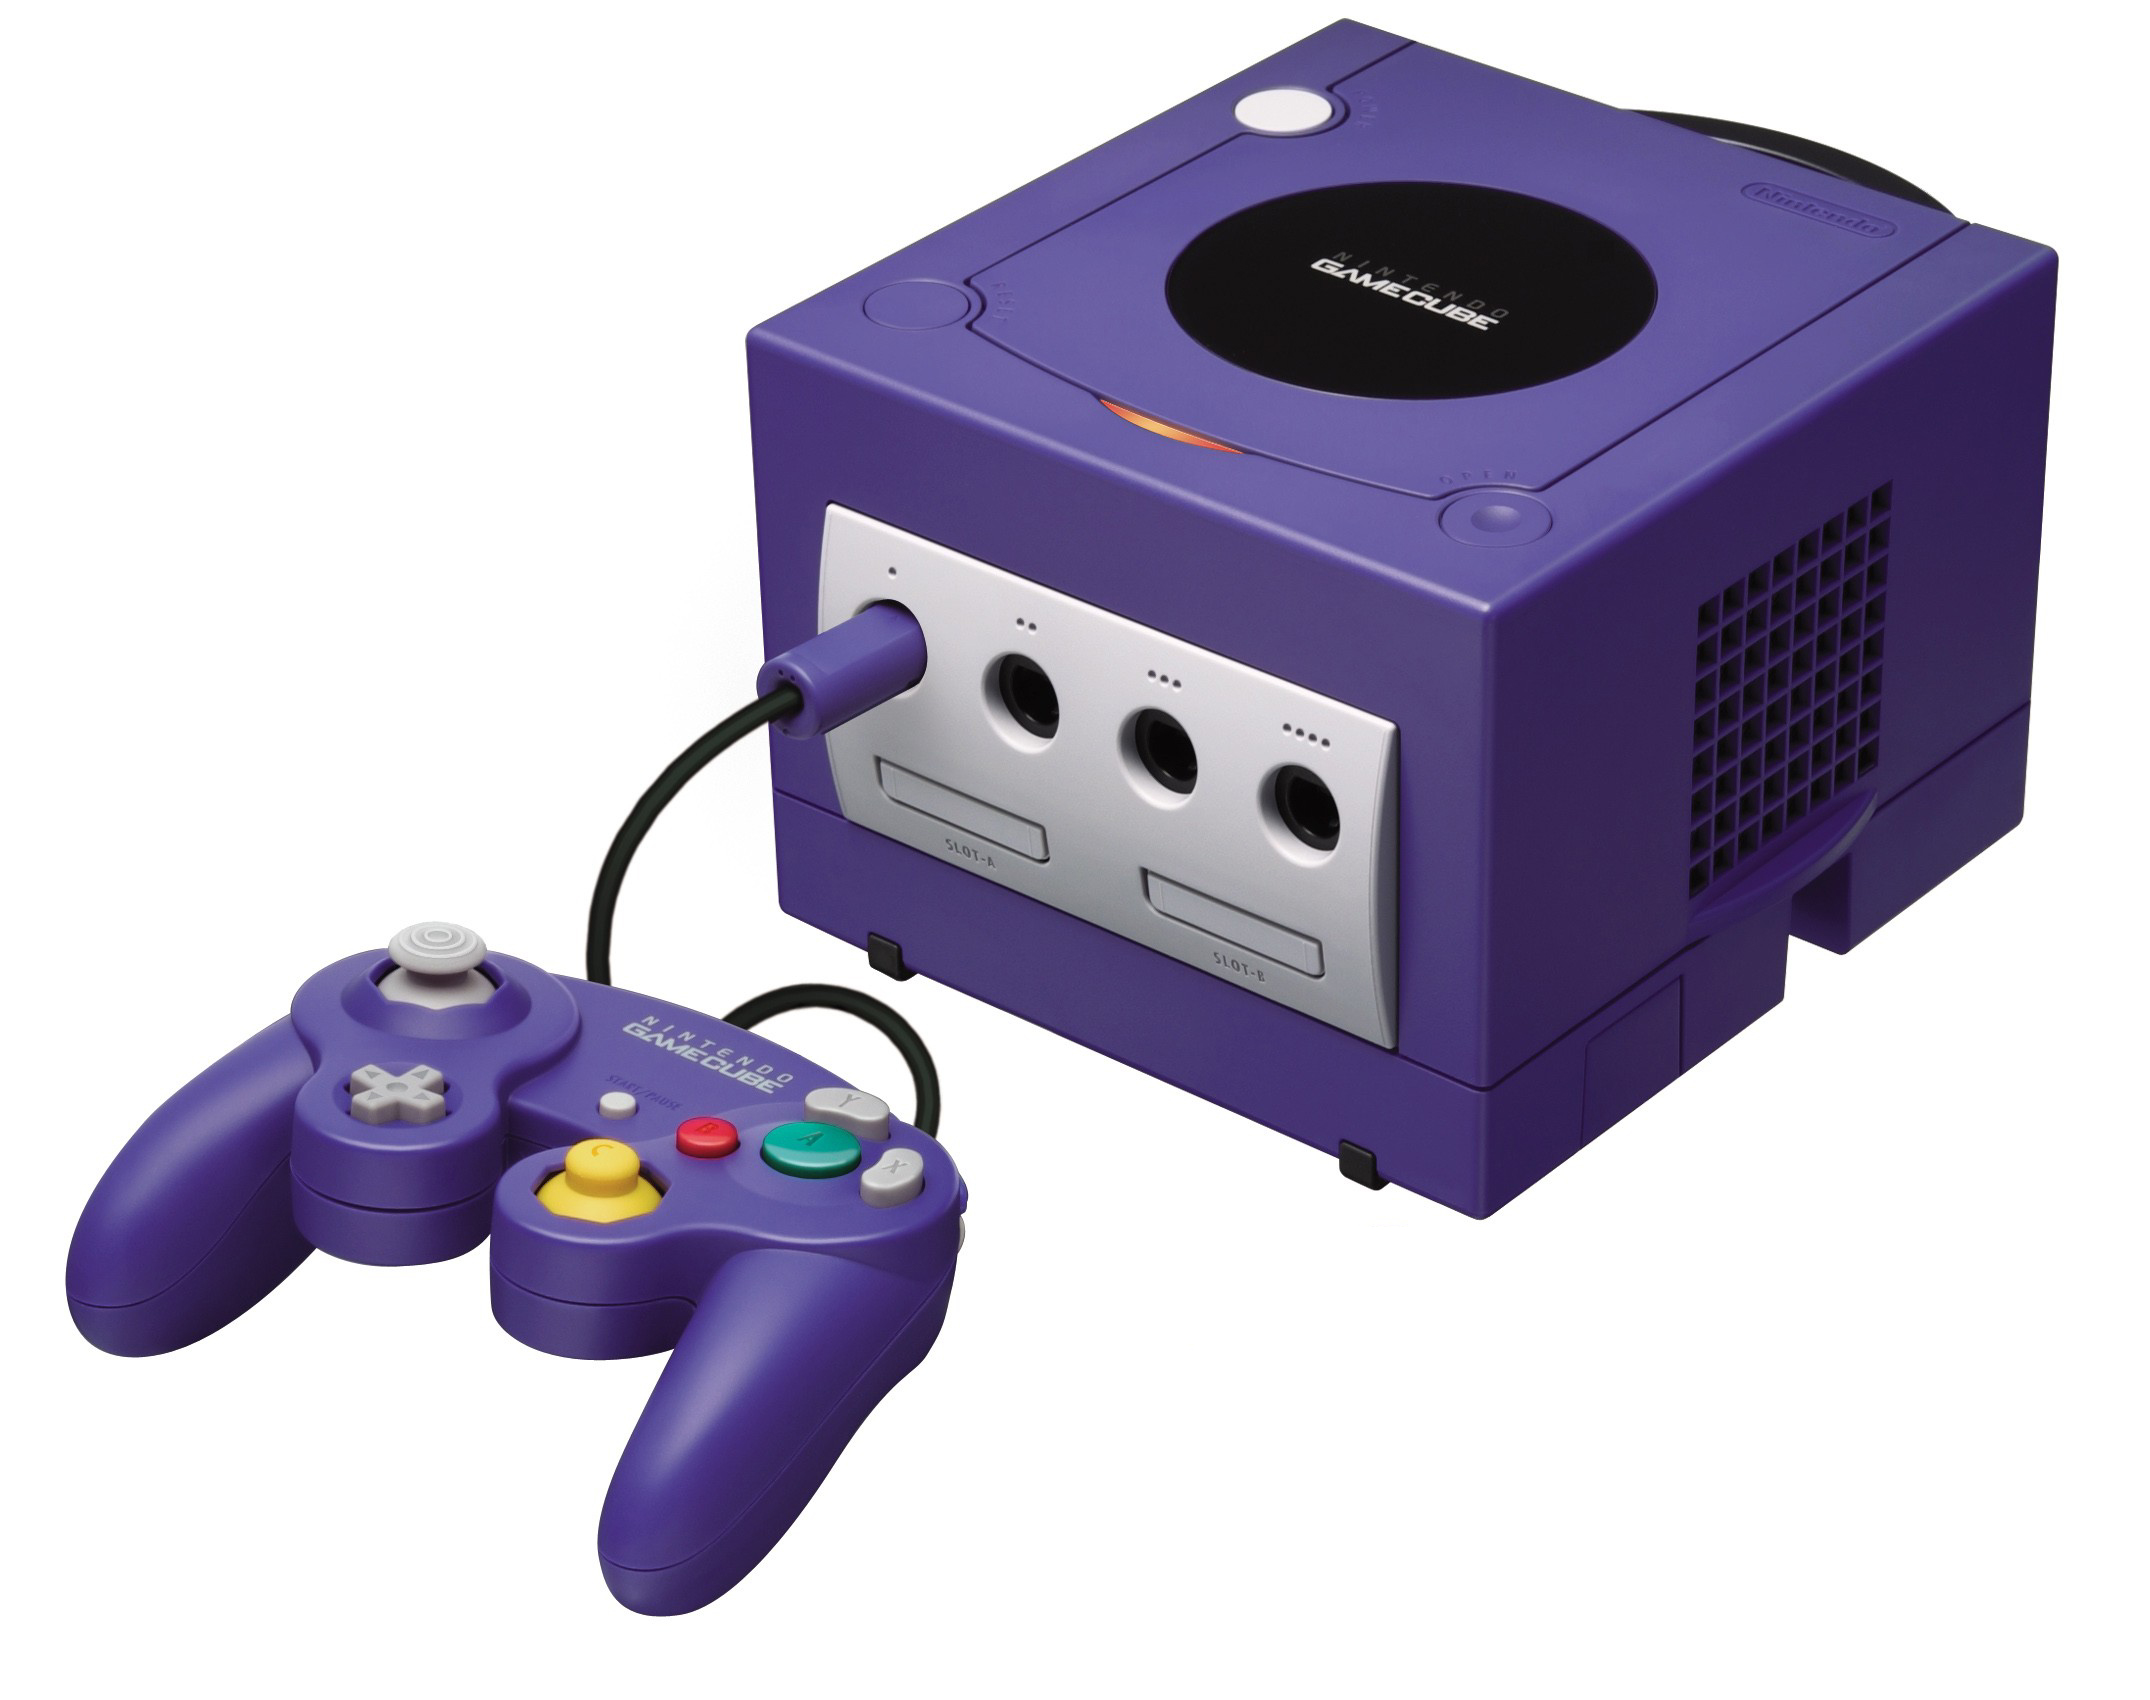 The Poor Sales of the GameCube